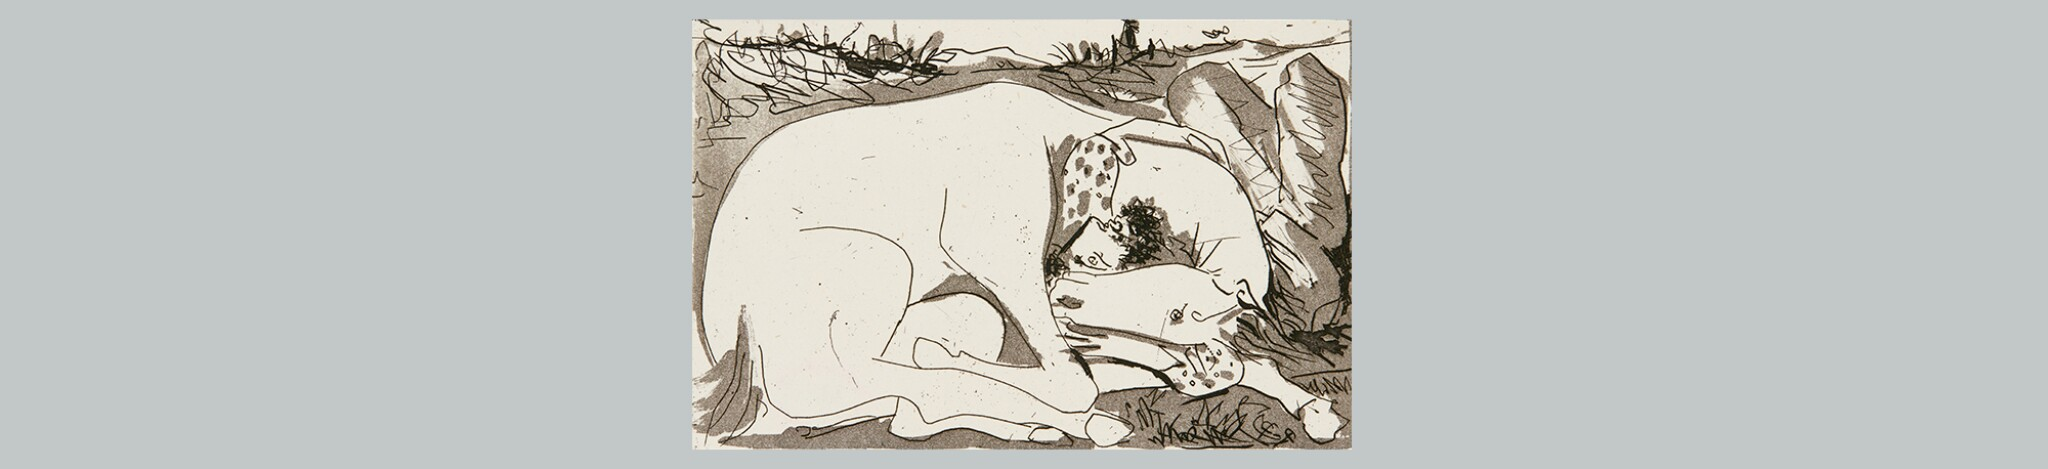 Prints from the Collection of Marina Picasso Online